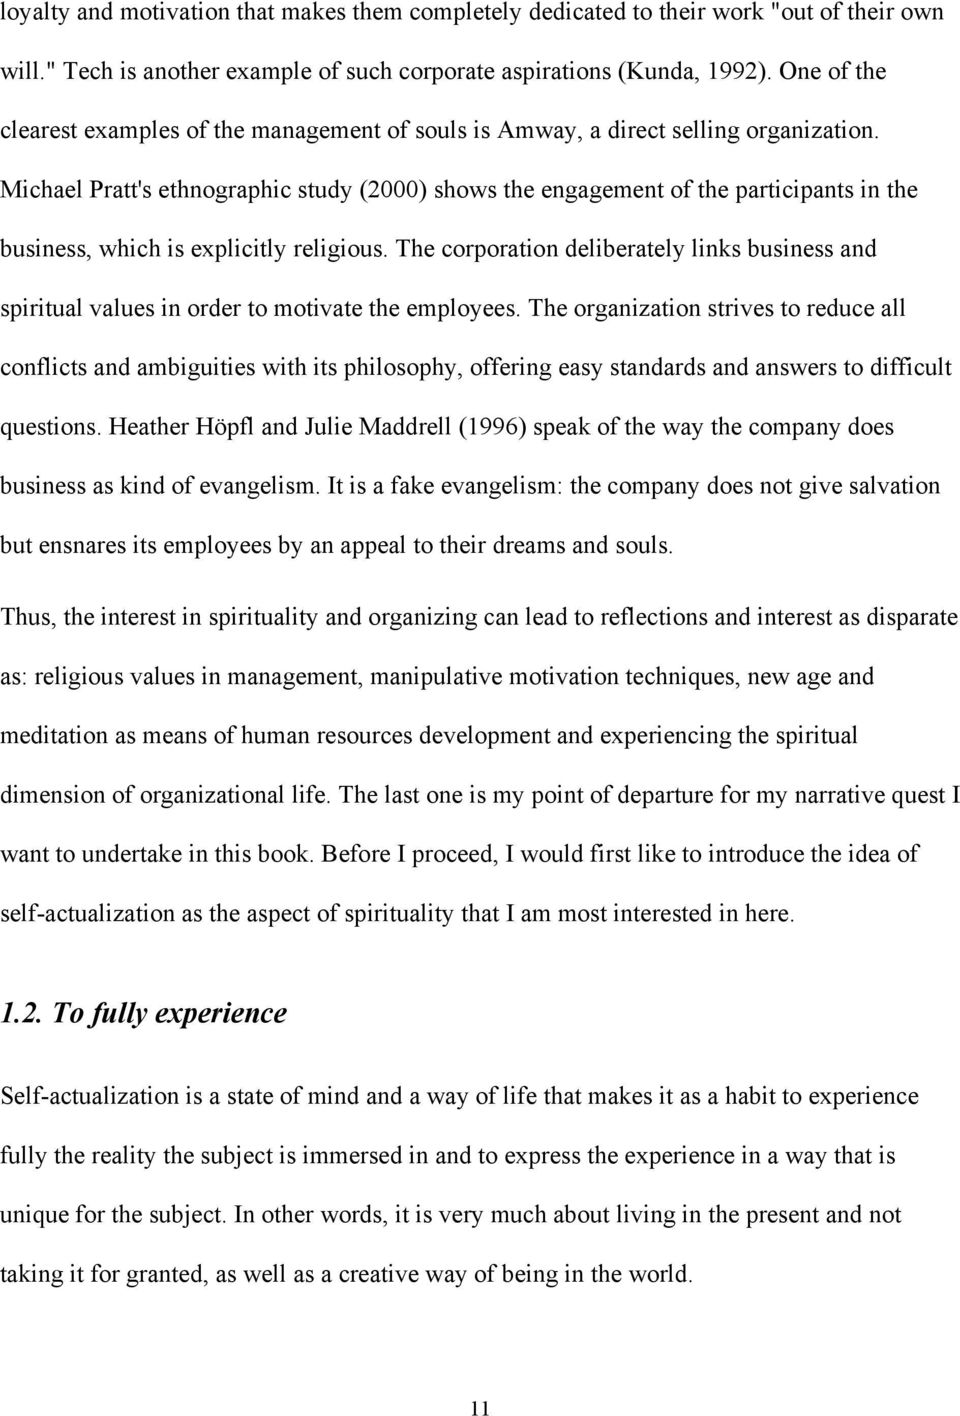 Michael Pratt's ethnographic study (2000) shows the engagement of the participants in the business, which is explicitly religious.